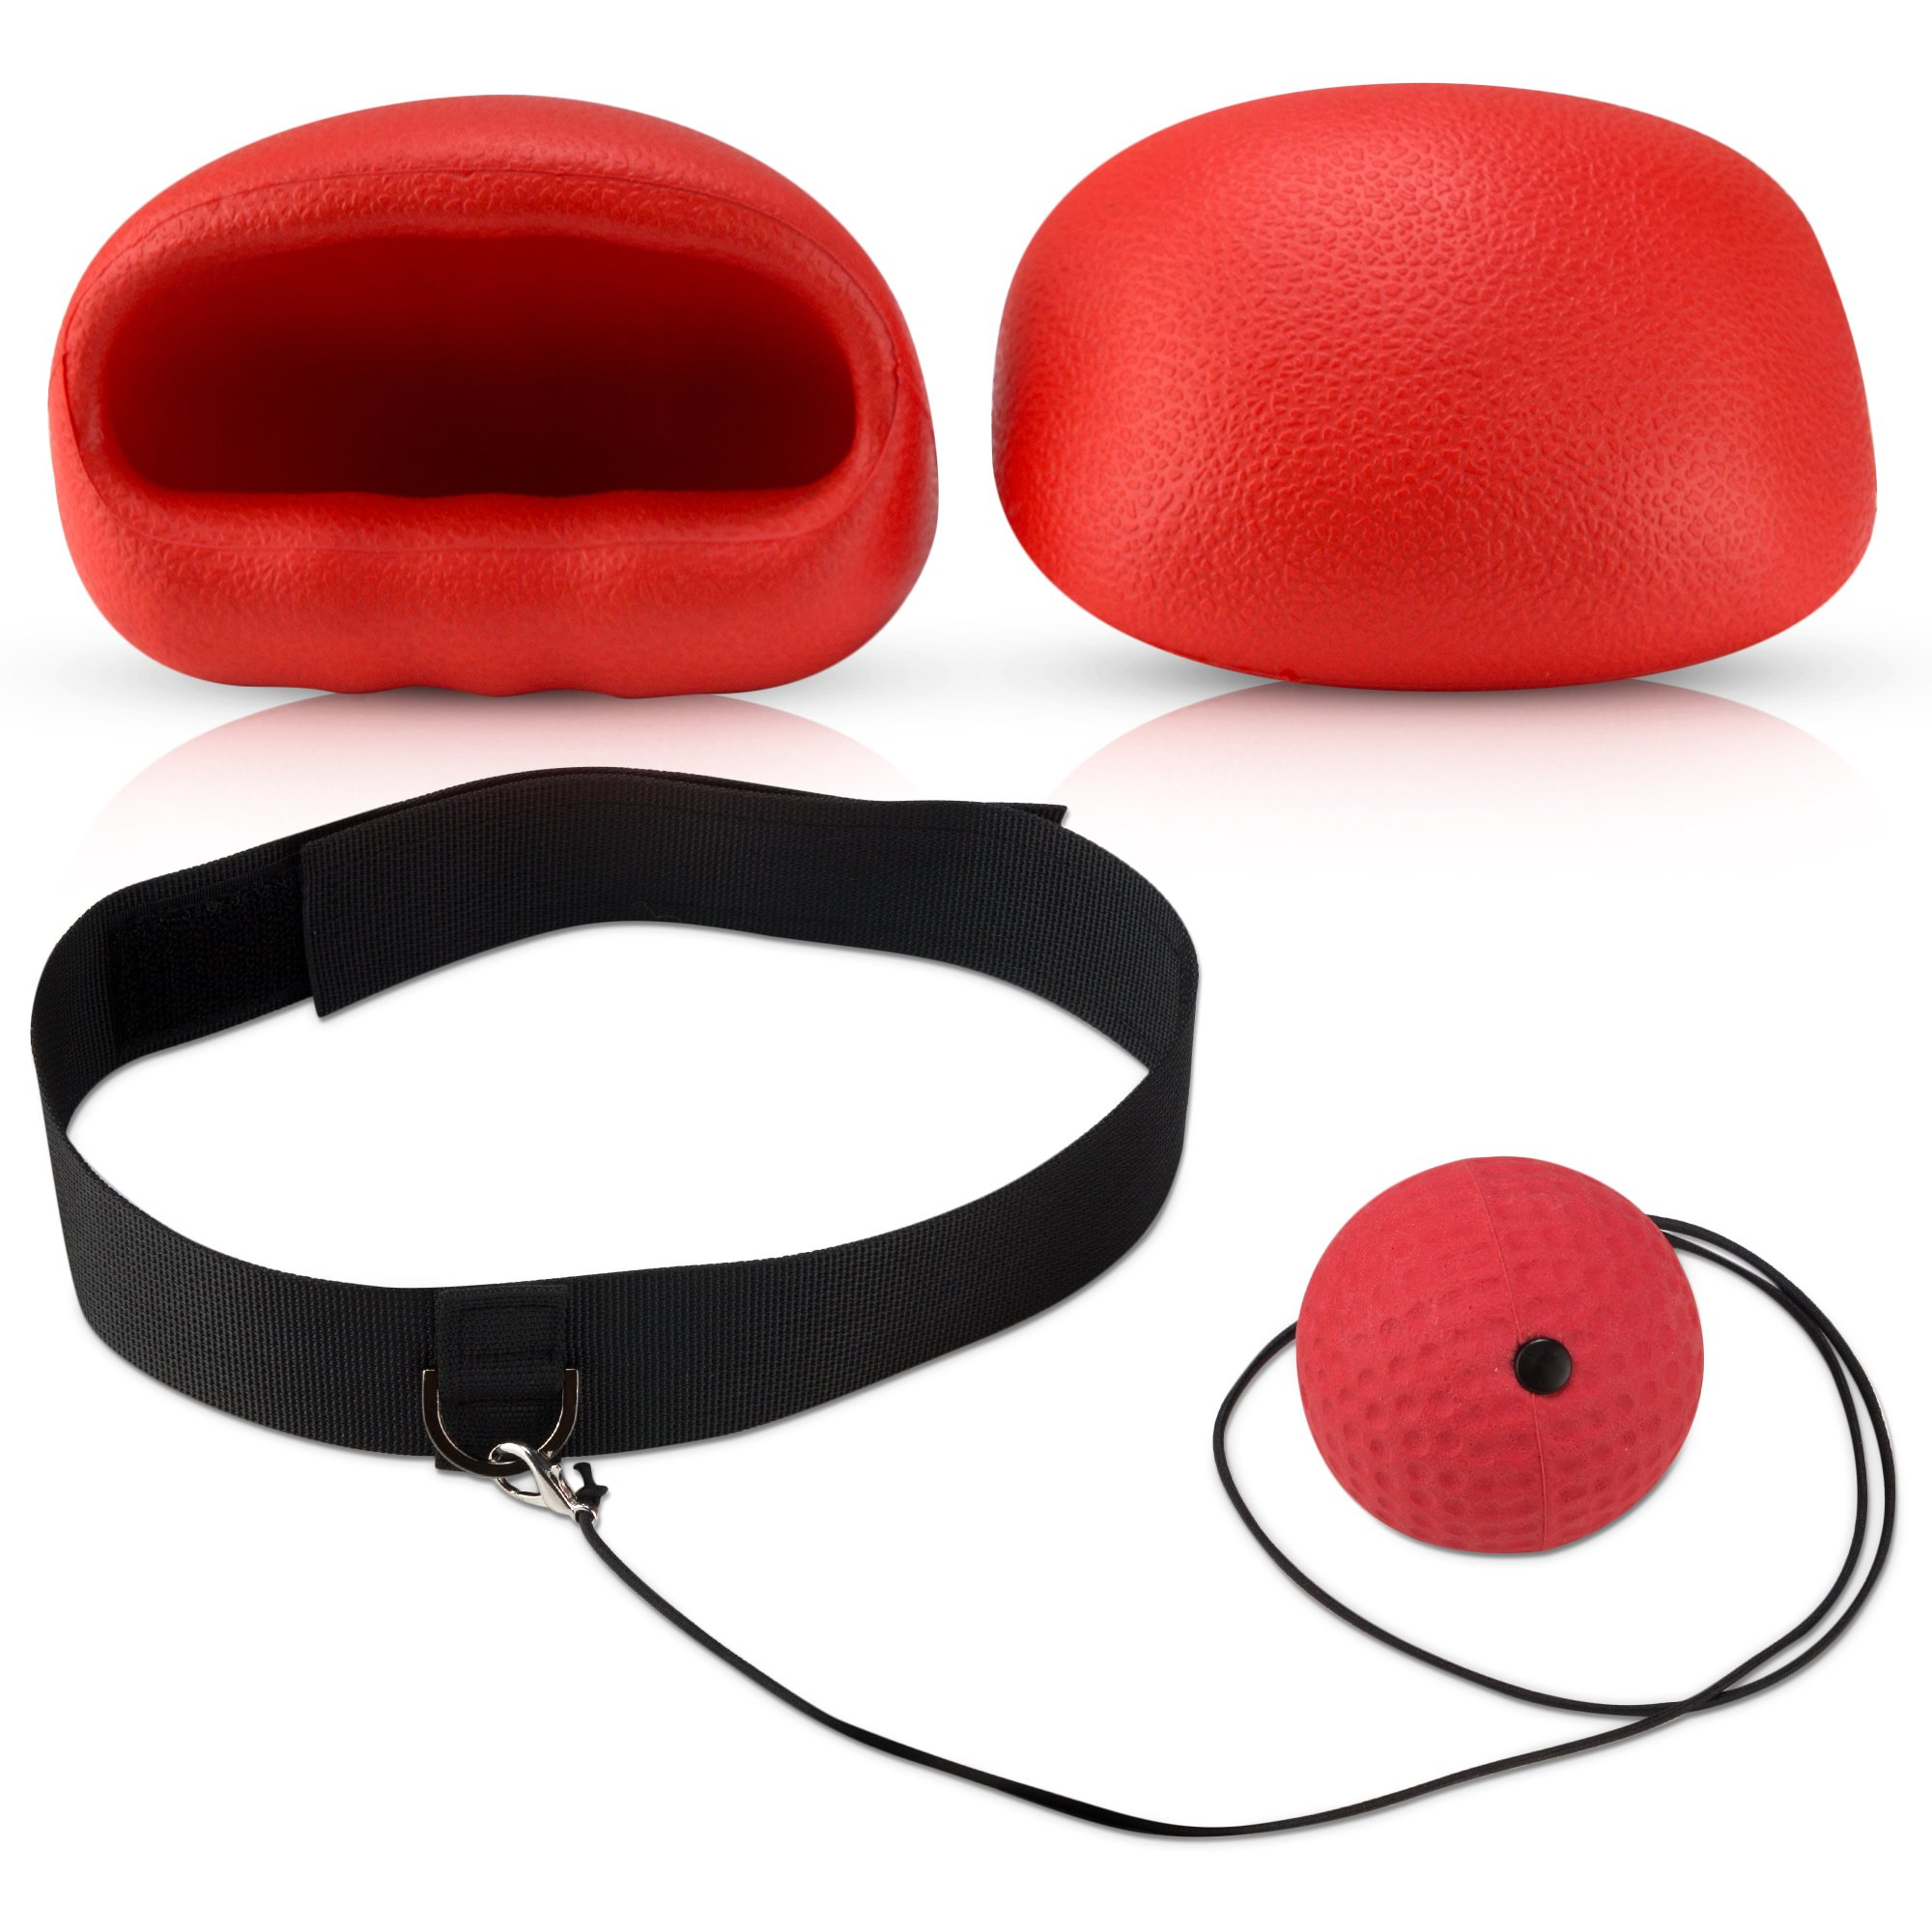 Boxing Reflex Ball - Boxing Equipment, Adjustable Head Band, Gloves, Extra String, Instruction and Repair Guide Included - Perfect For Reflex/Speed Training Improve Reactions for Kids Aswell by Punch King (Image #1)